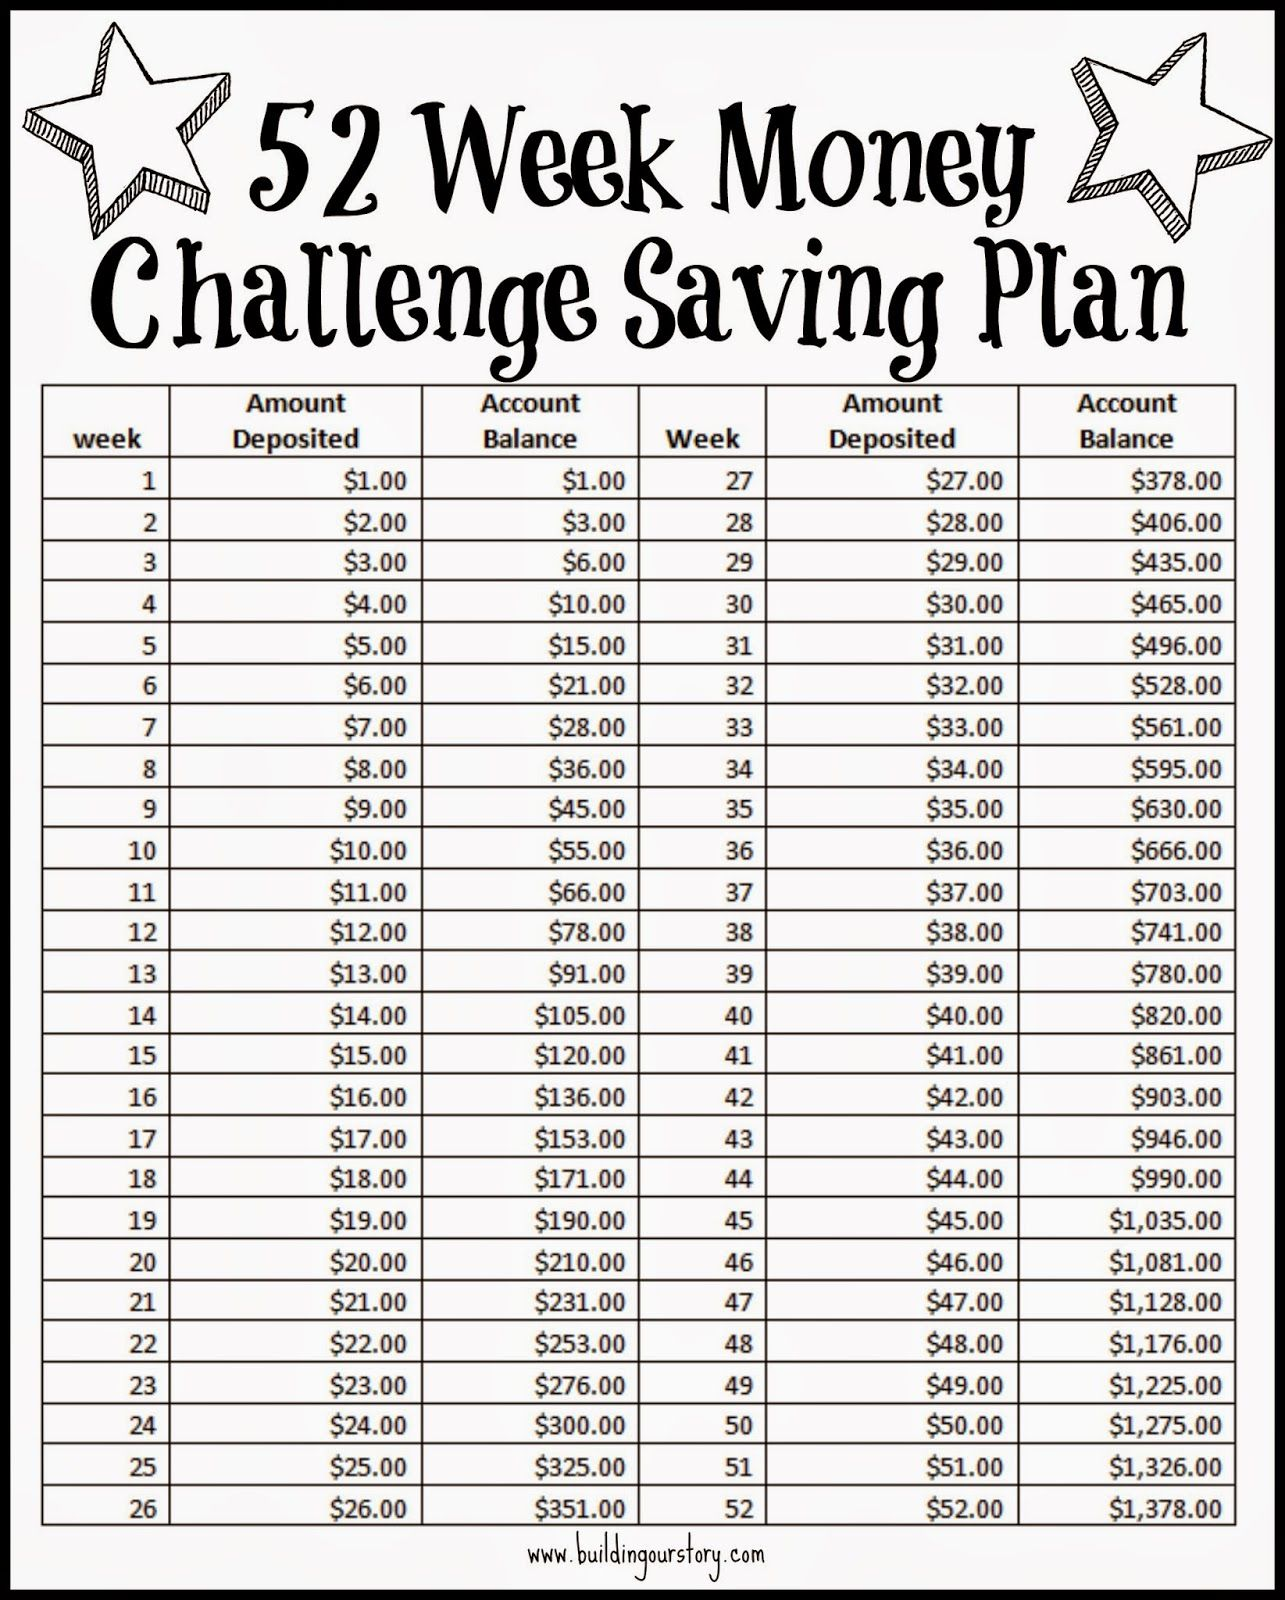 picture relating to 52 Week Money Saving Challenge Printable named 52 7 days Income Issue Preserving Method - Absolutely free Printable